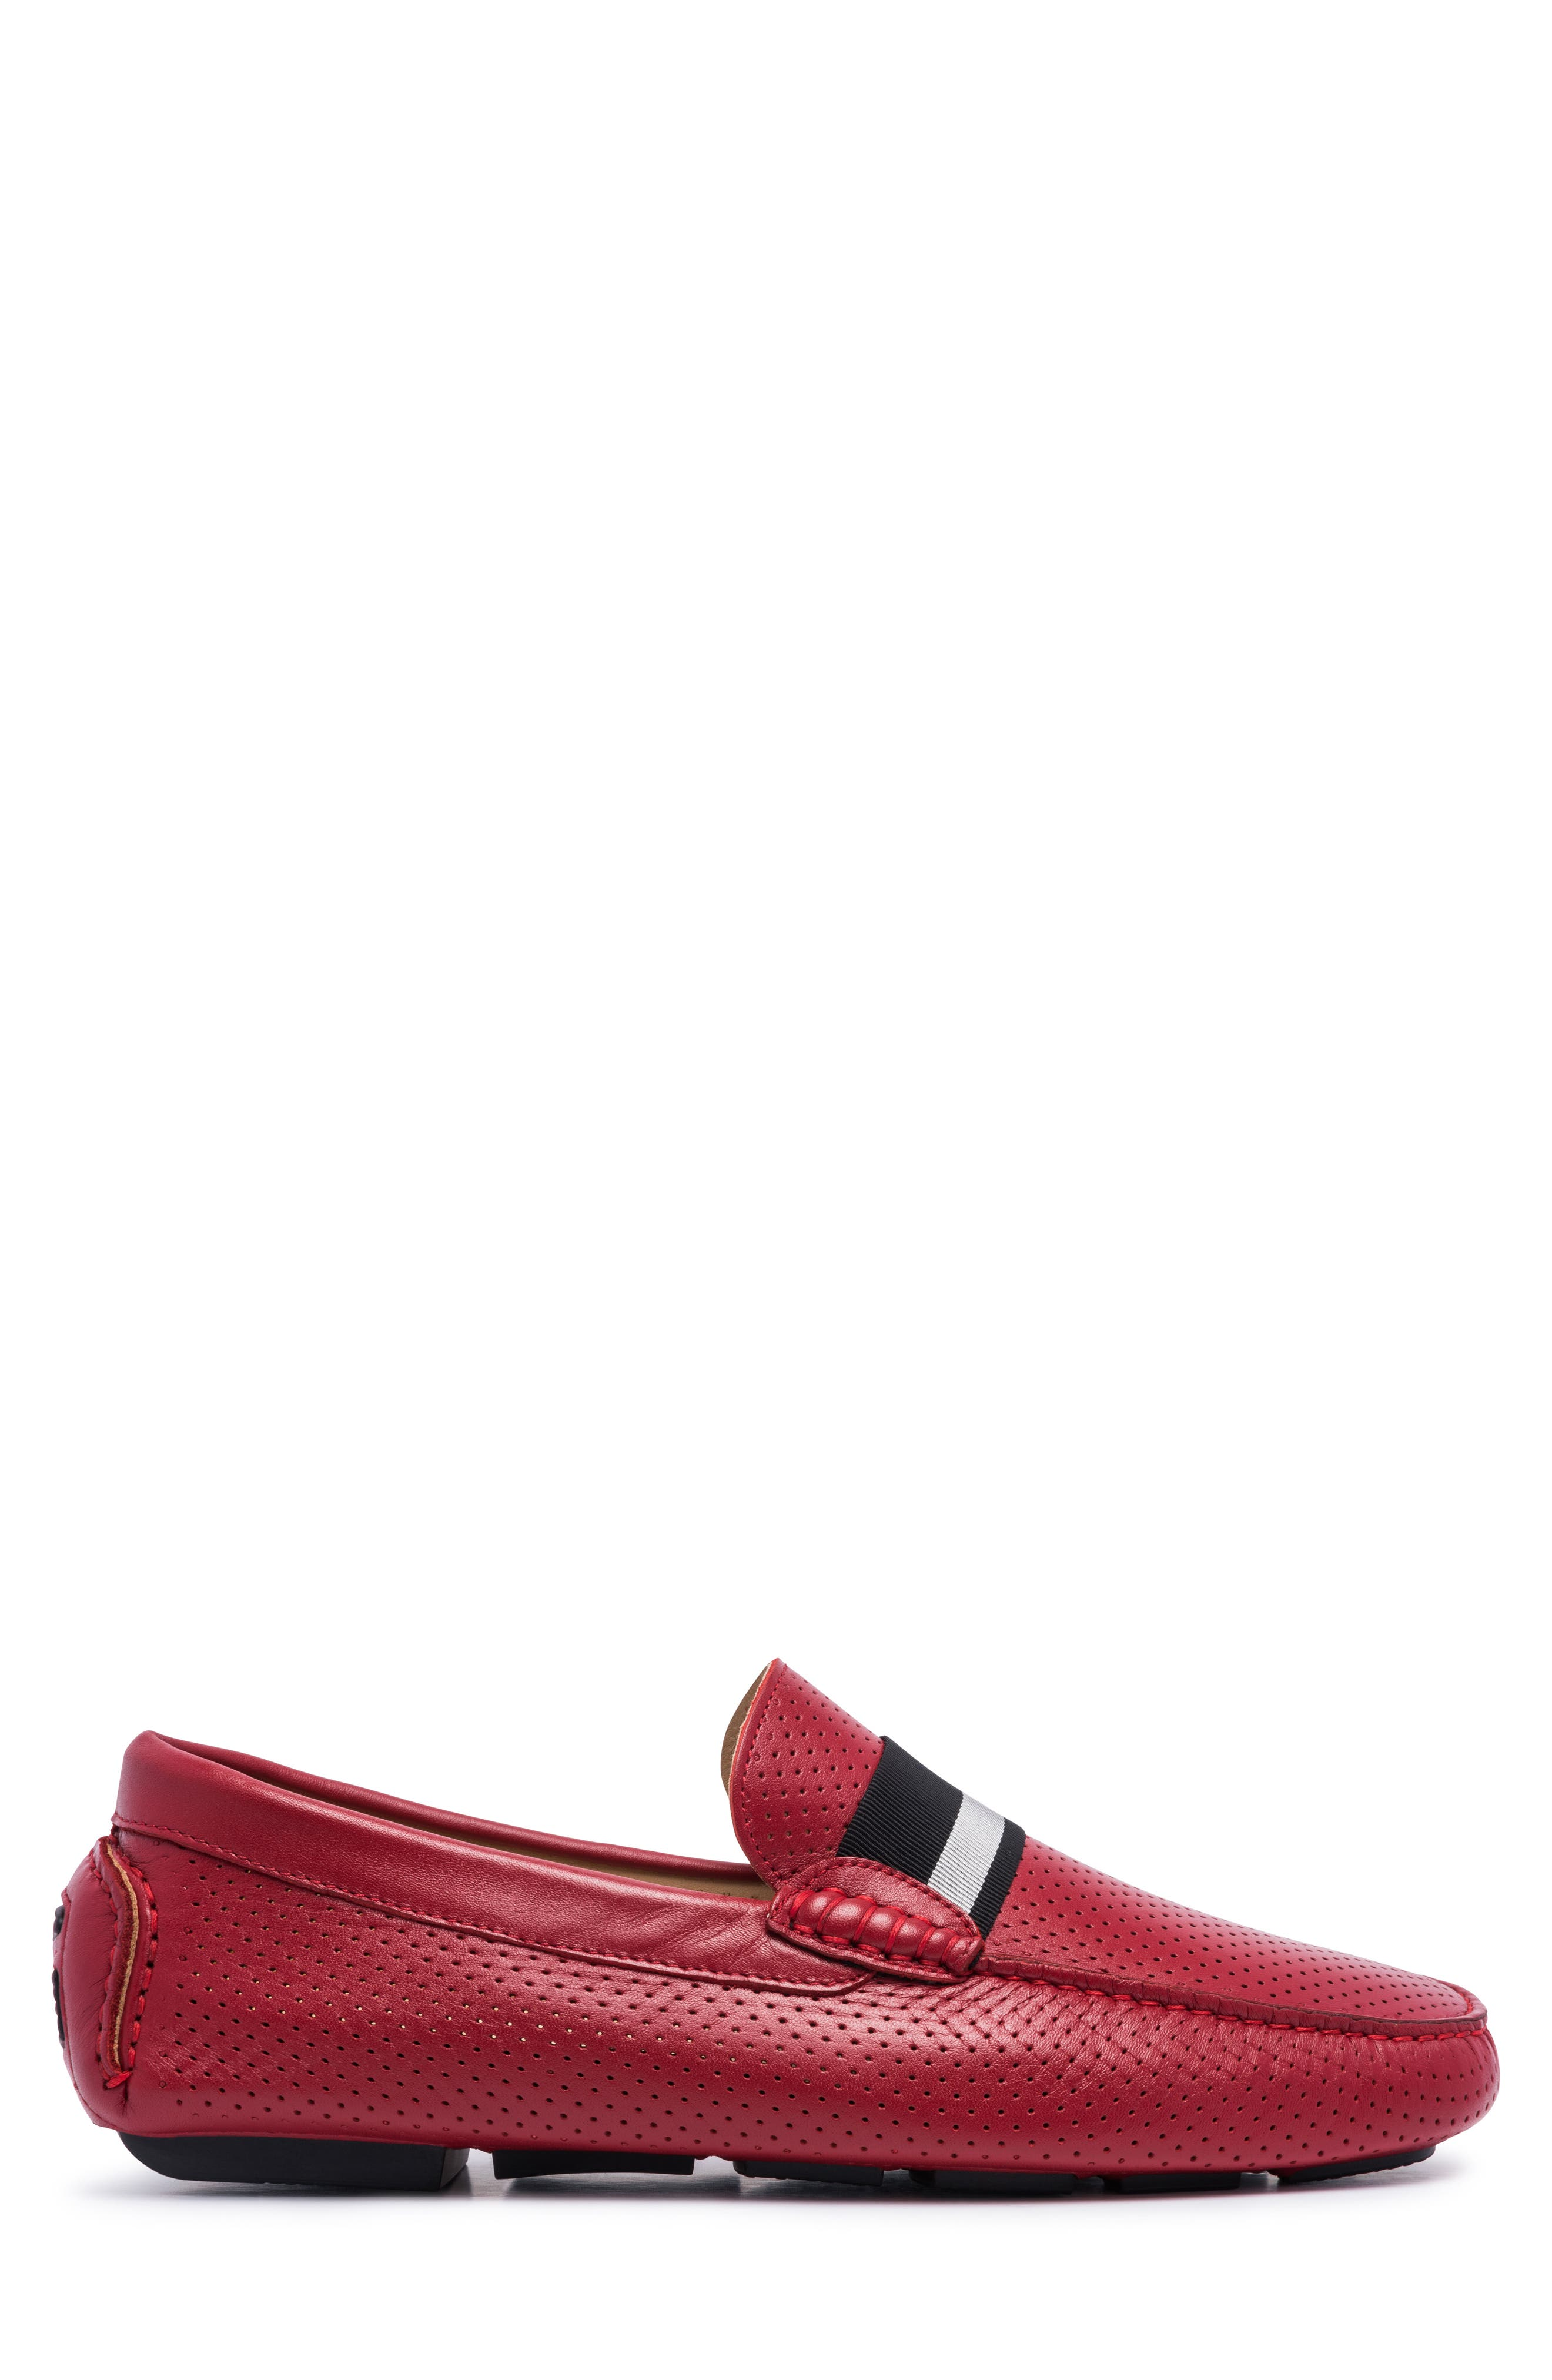 Sardegna Driving Shoe,                             Alternate thumbnail 3, color,                             RED LEATHER